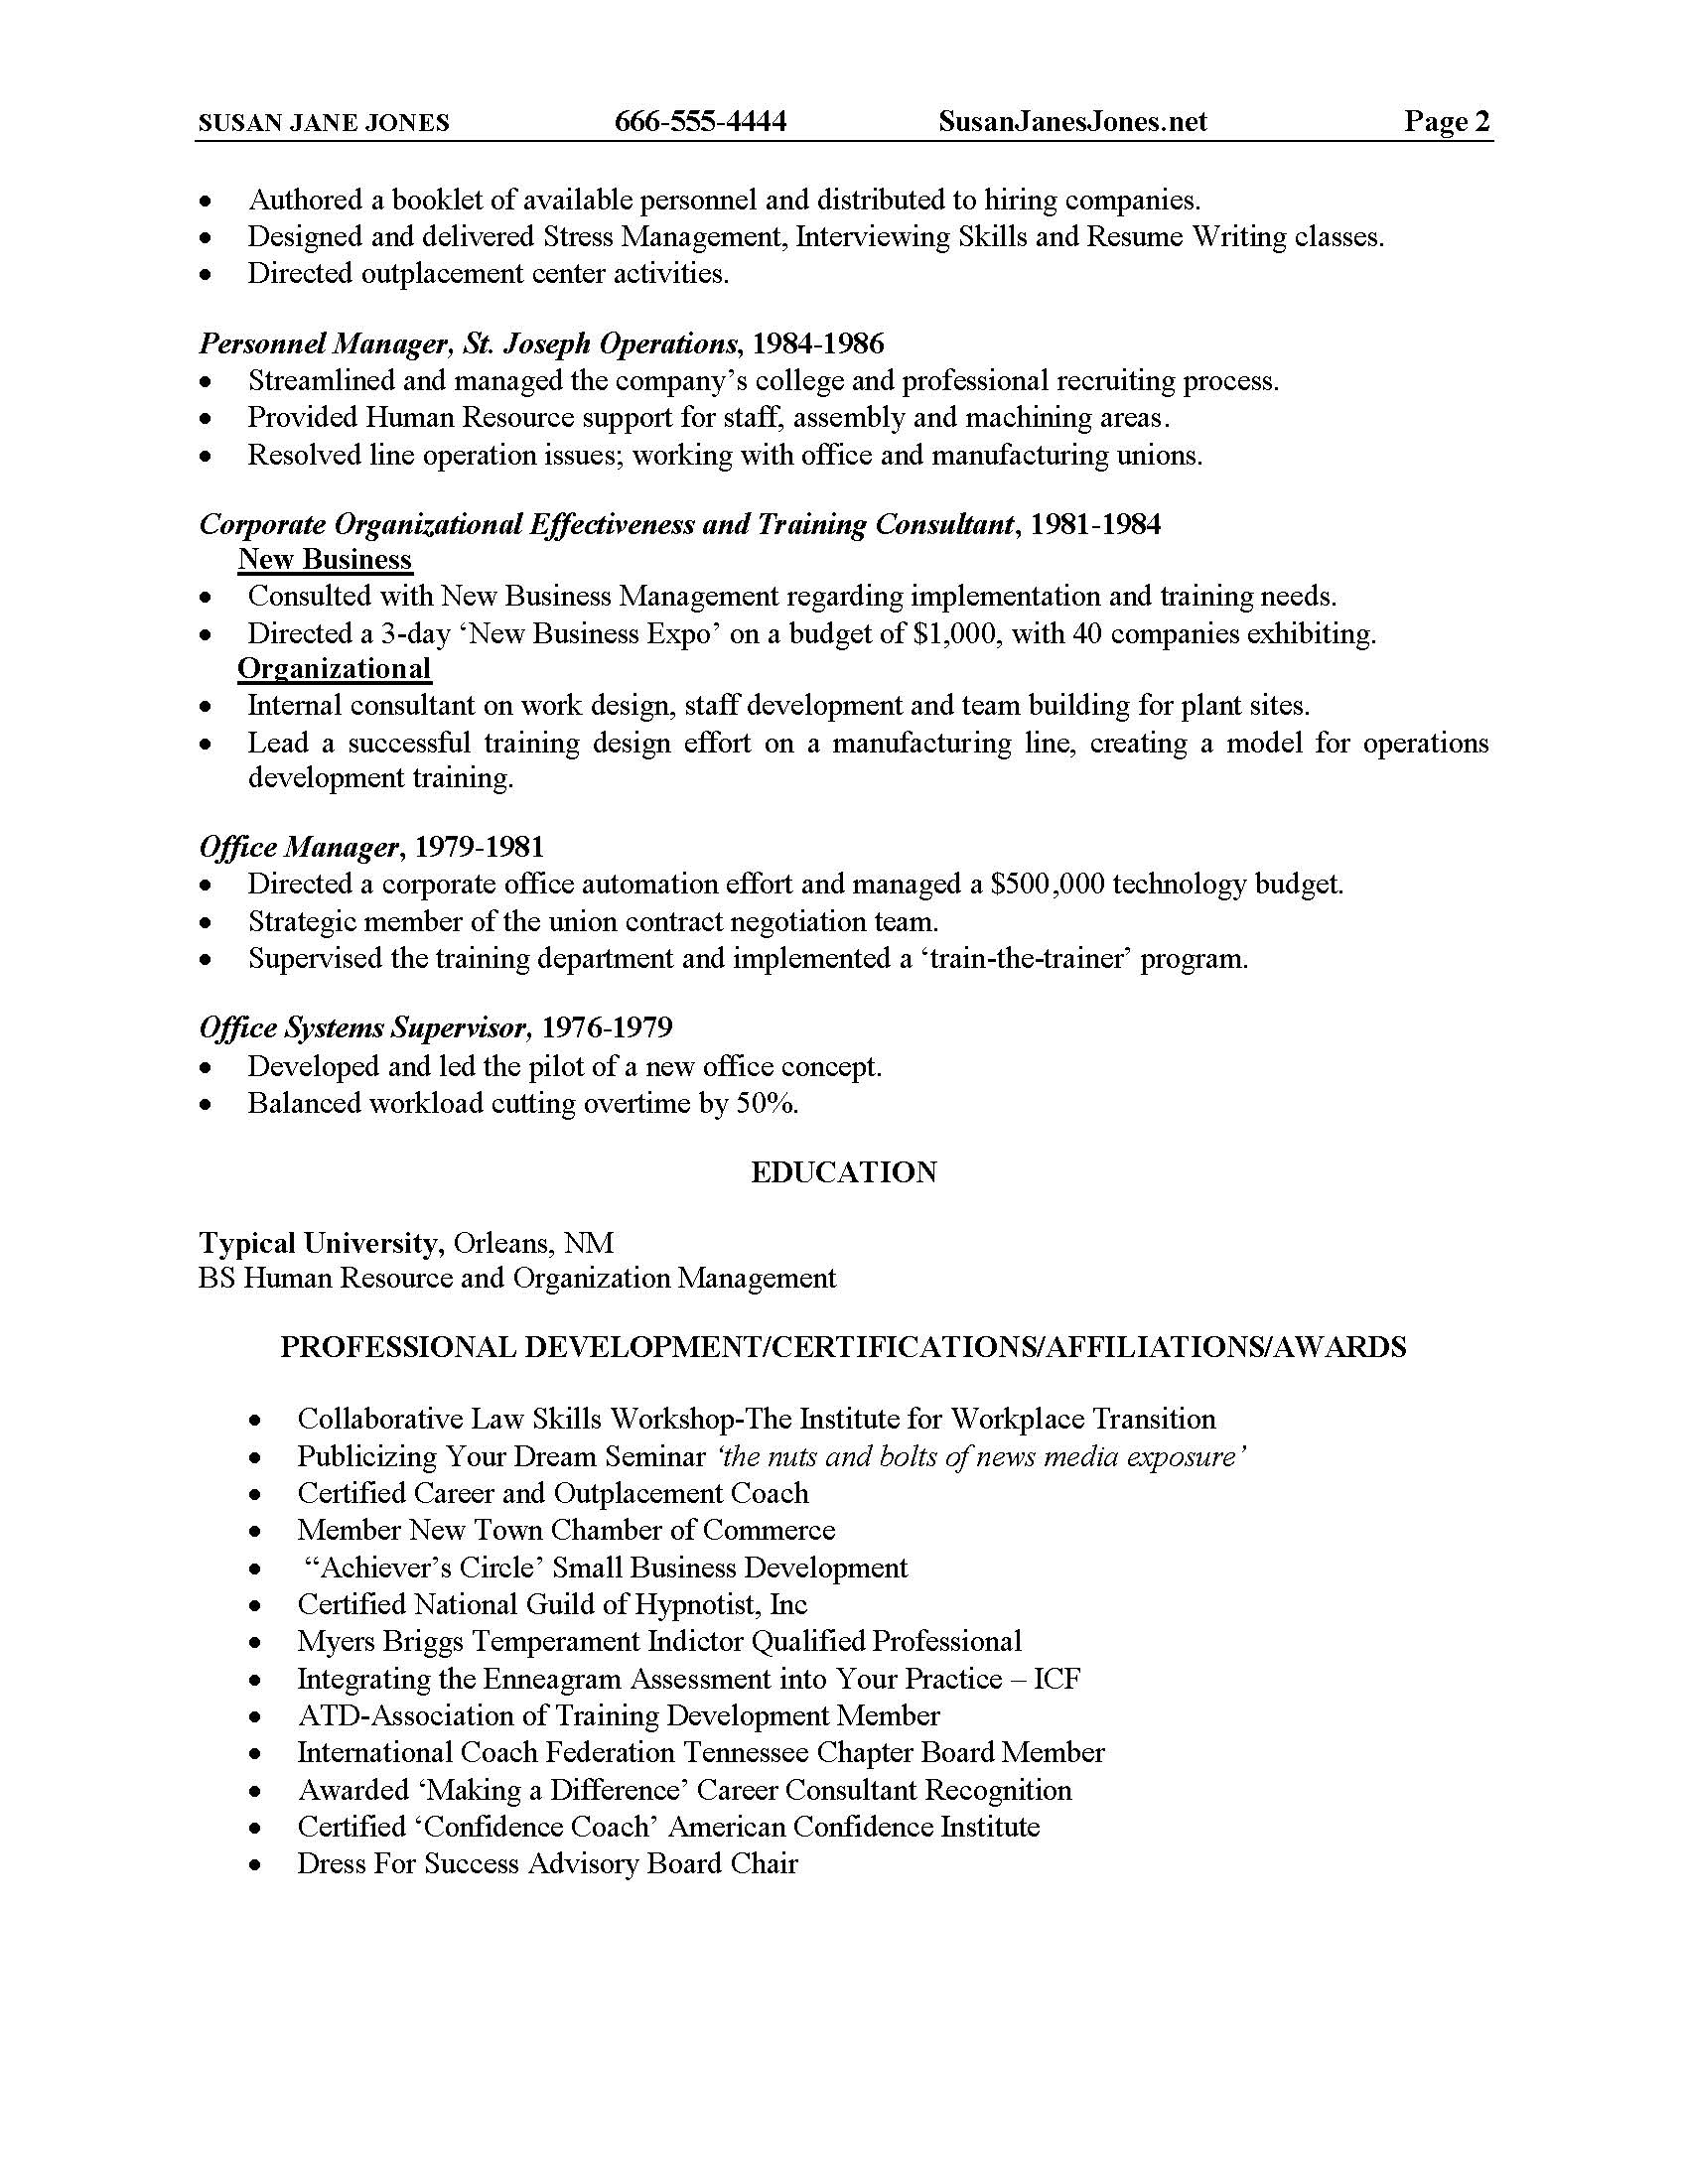 Resume Sample 2_Page_2